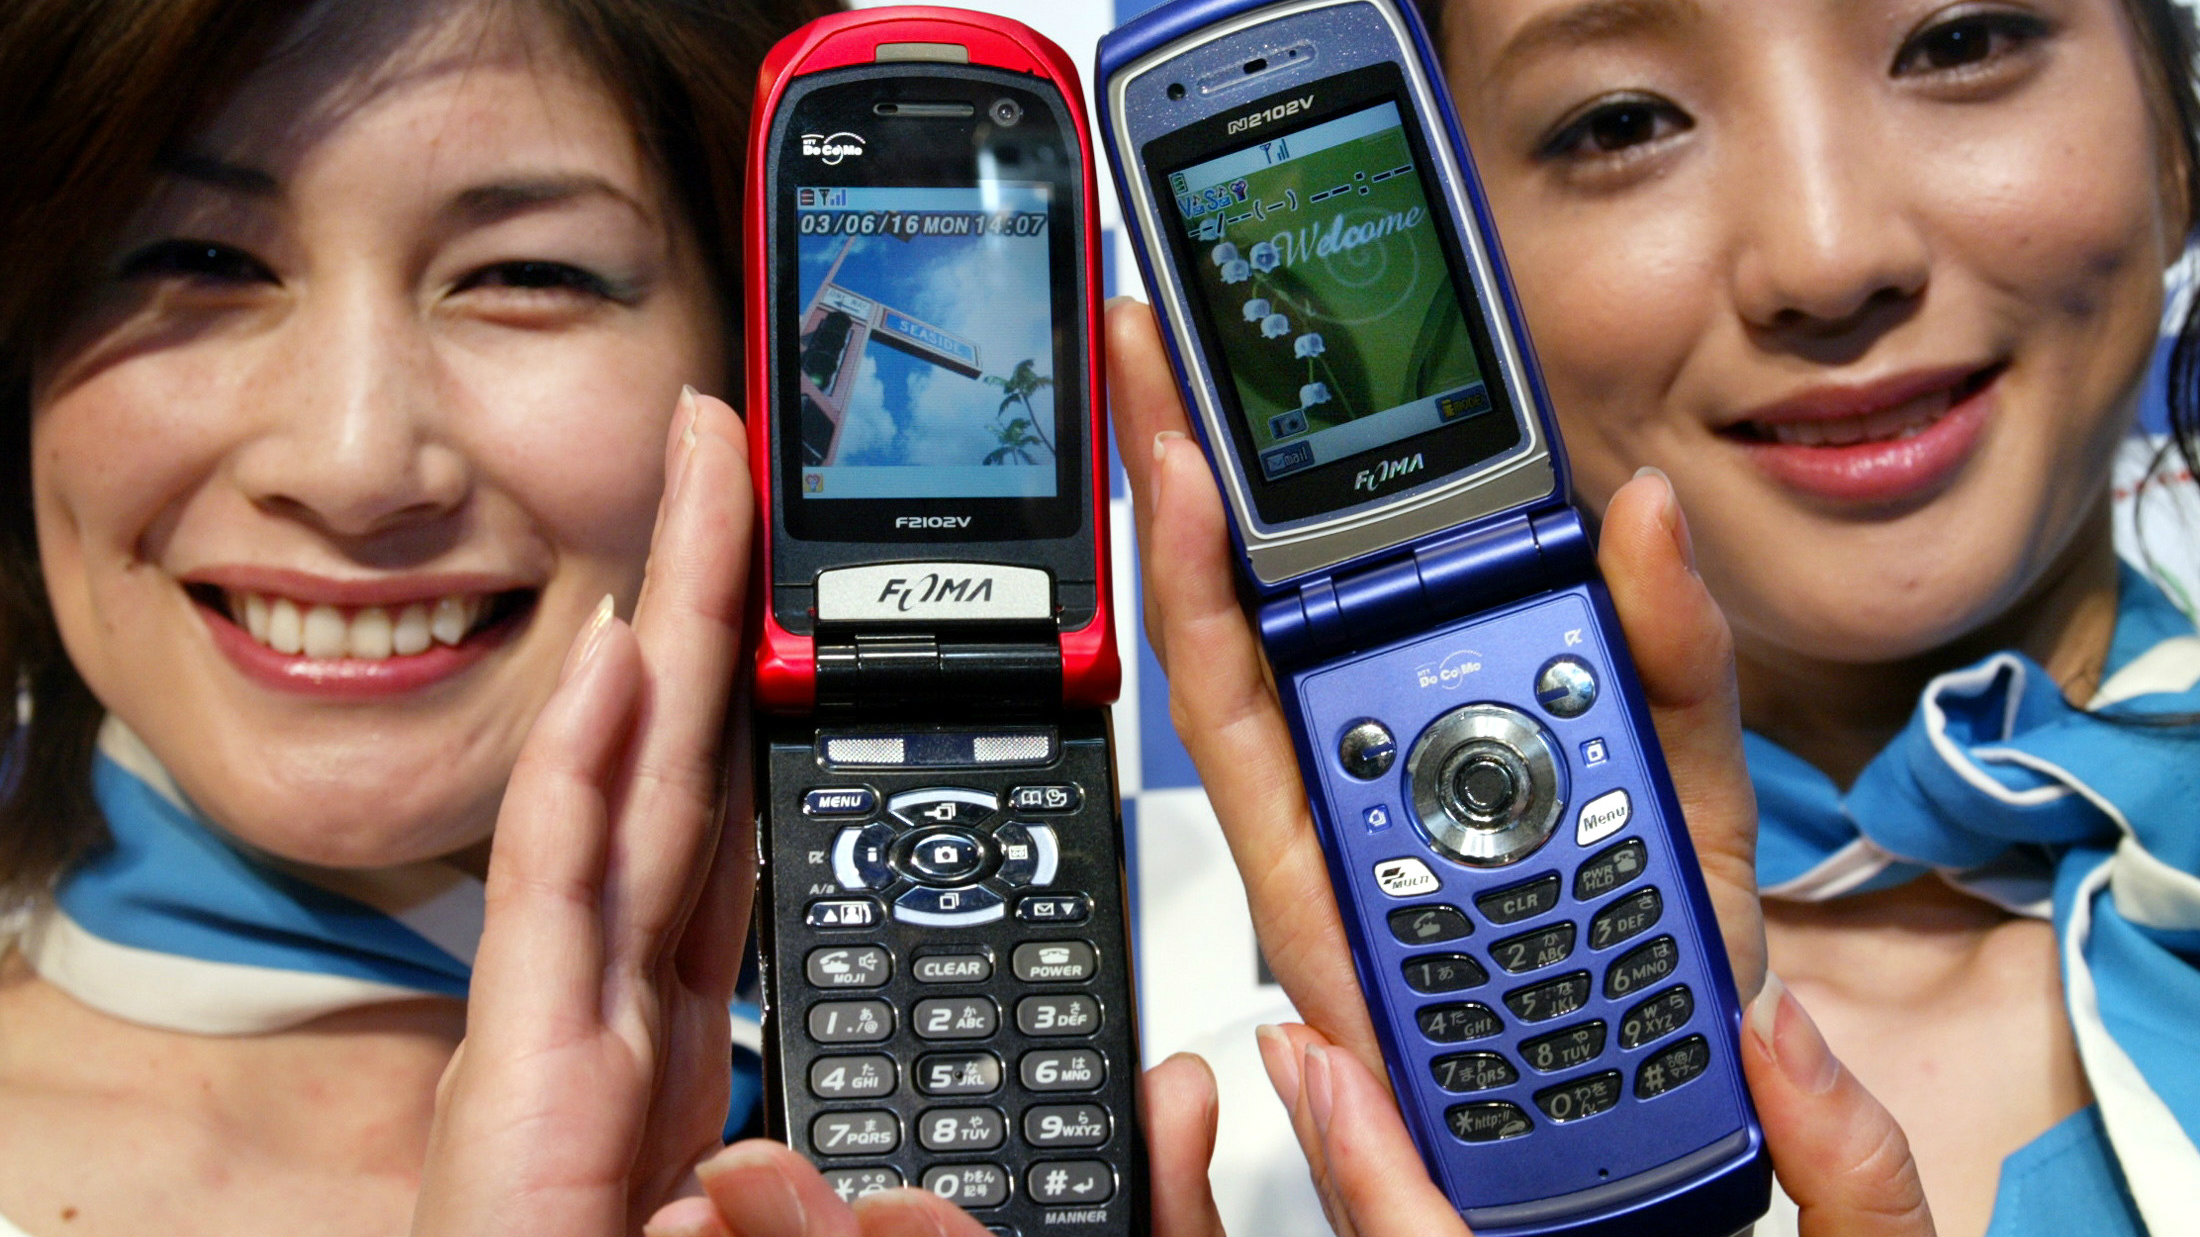 New handsets manufactured by Fujitsu Ltd (L) and NEC Corp are displayed at an unveiling in Tokyo June 16, 2003. Japan's NTT DoCoMo Inc said on Monday it would offer the two handsets with longer battery life for its third-generation (3G) service in the next few months in a bid to spur demand for the fledgling service.